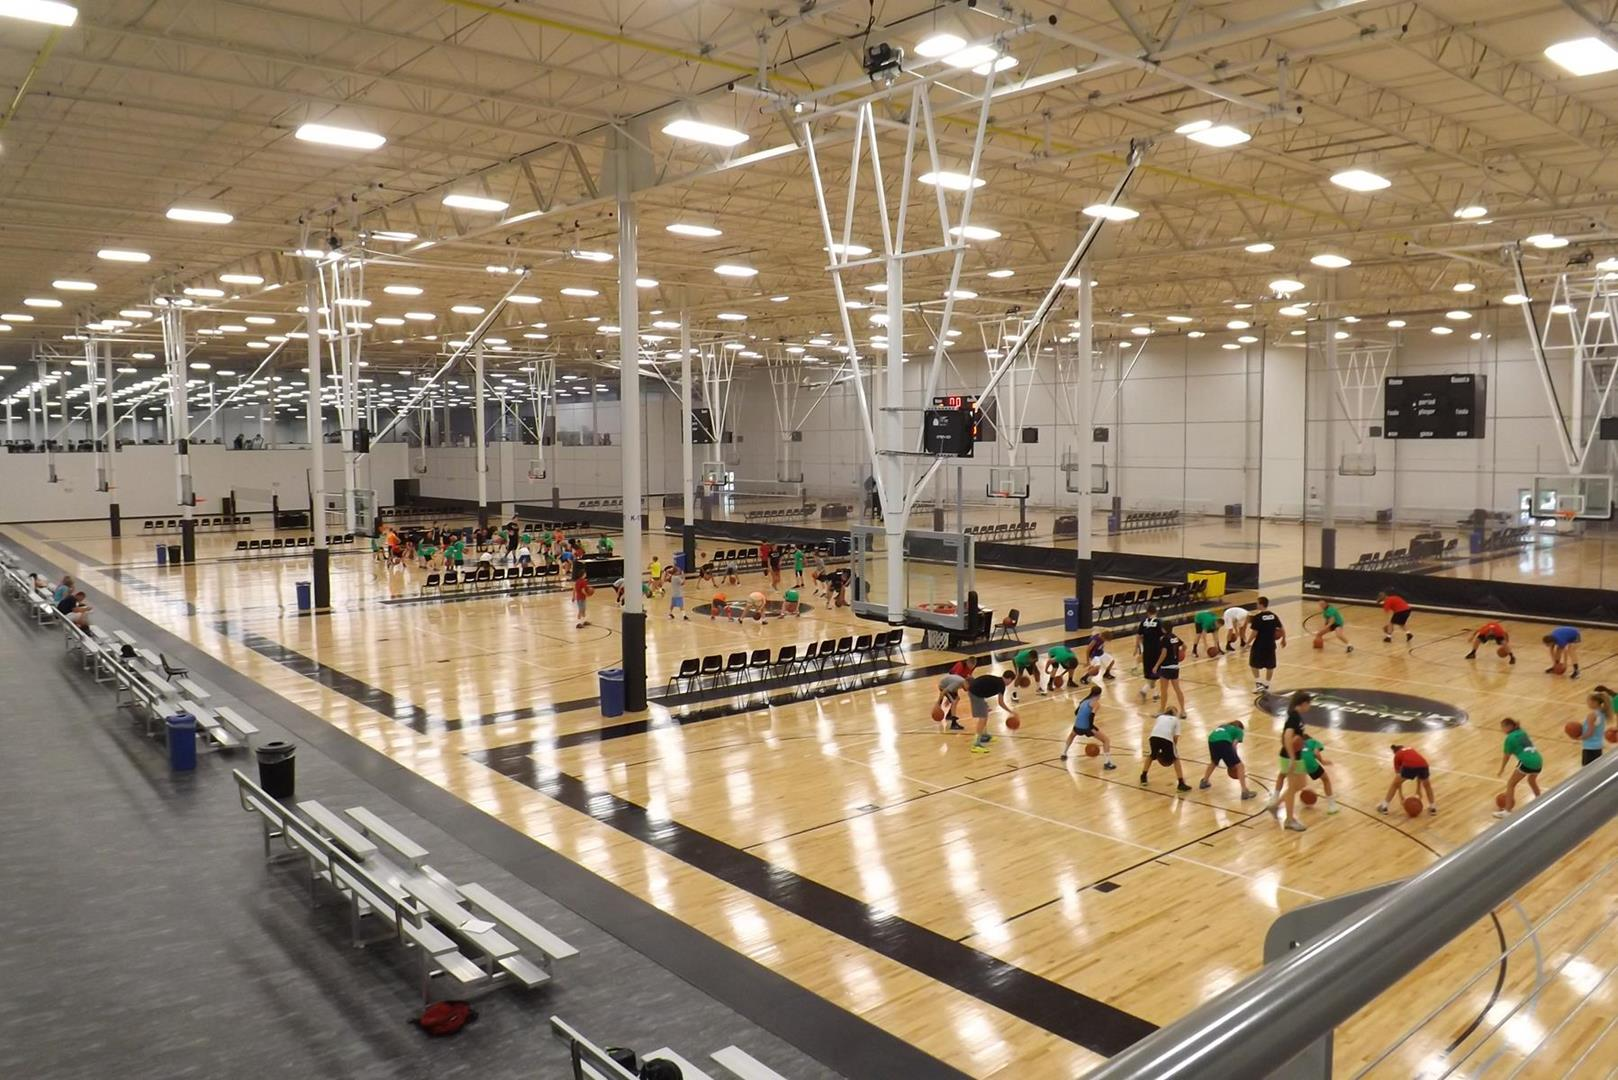 Basketball Gym Floor Plans 9 Top Indoor Facilities For 2016 Sports Planning Guide